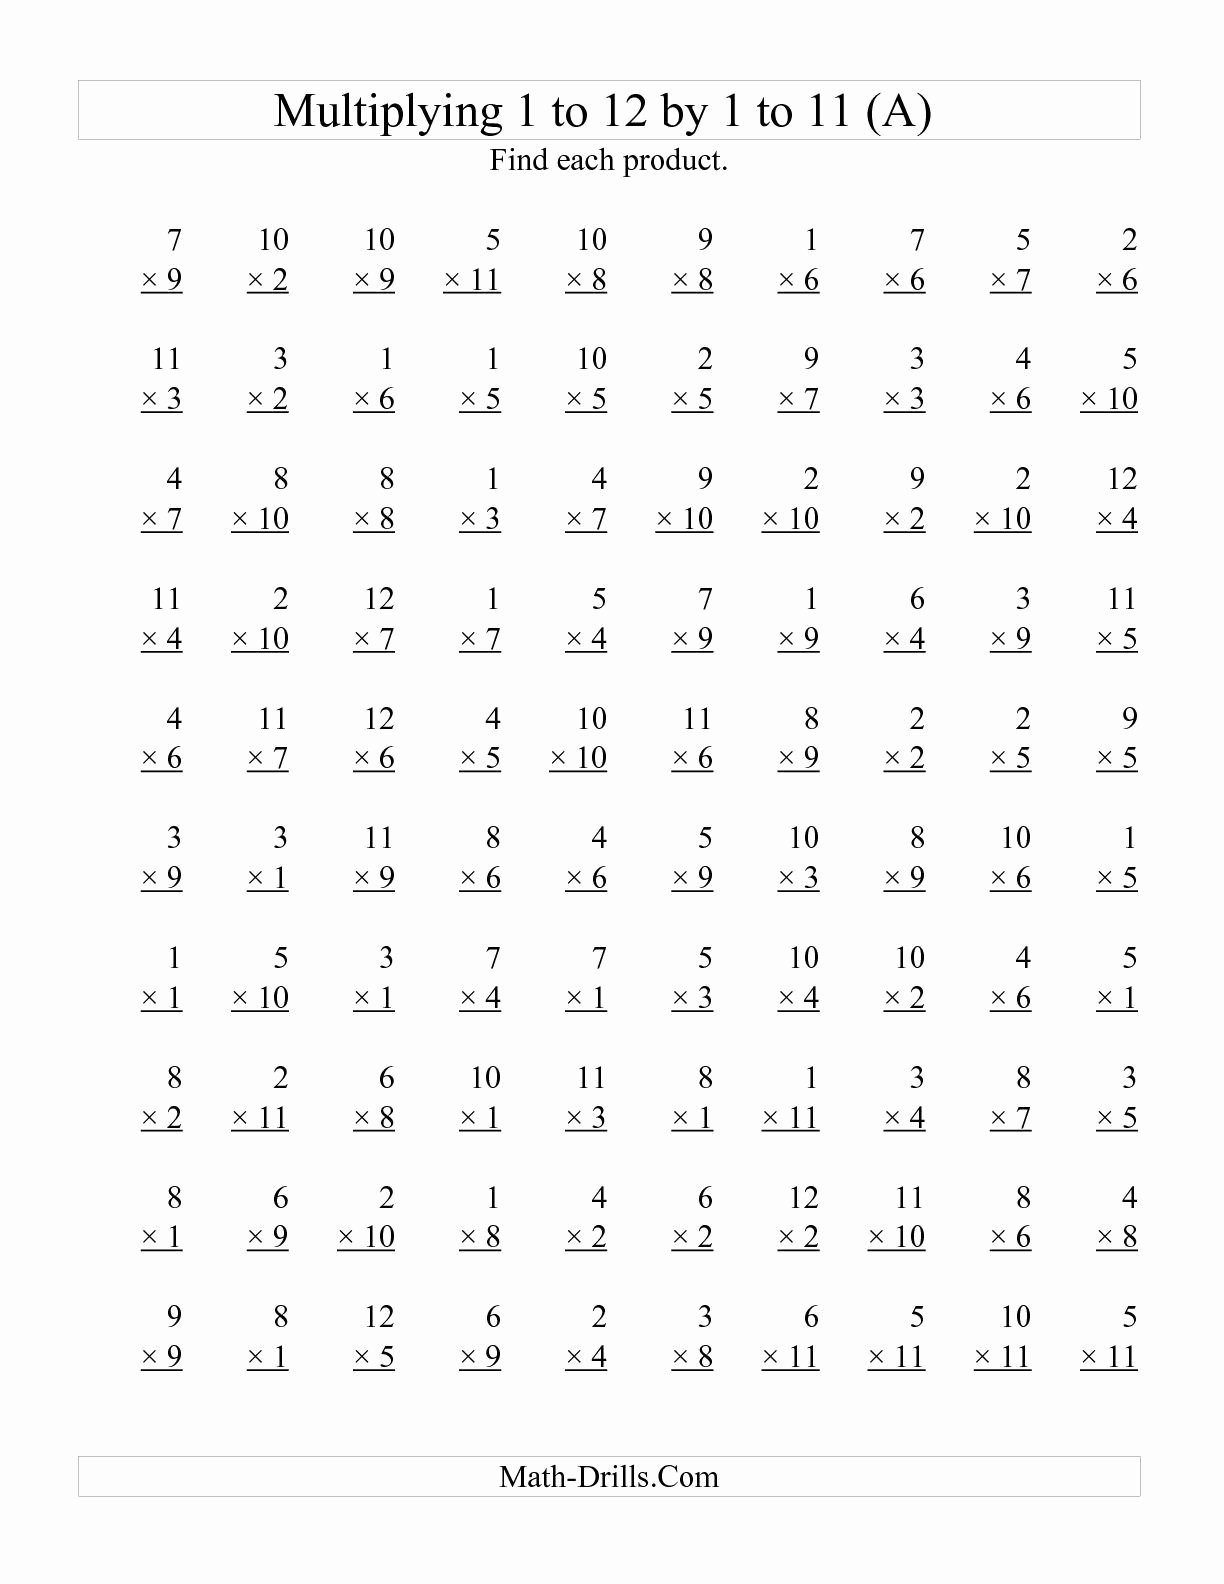 Multiplication Worksheets 1 Unique the 100 Vertical Questions Multiplying 1 to 12 by 1 to 11